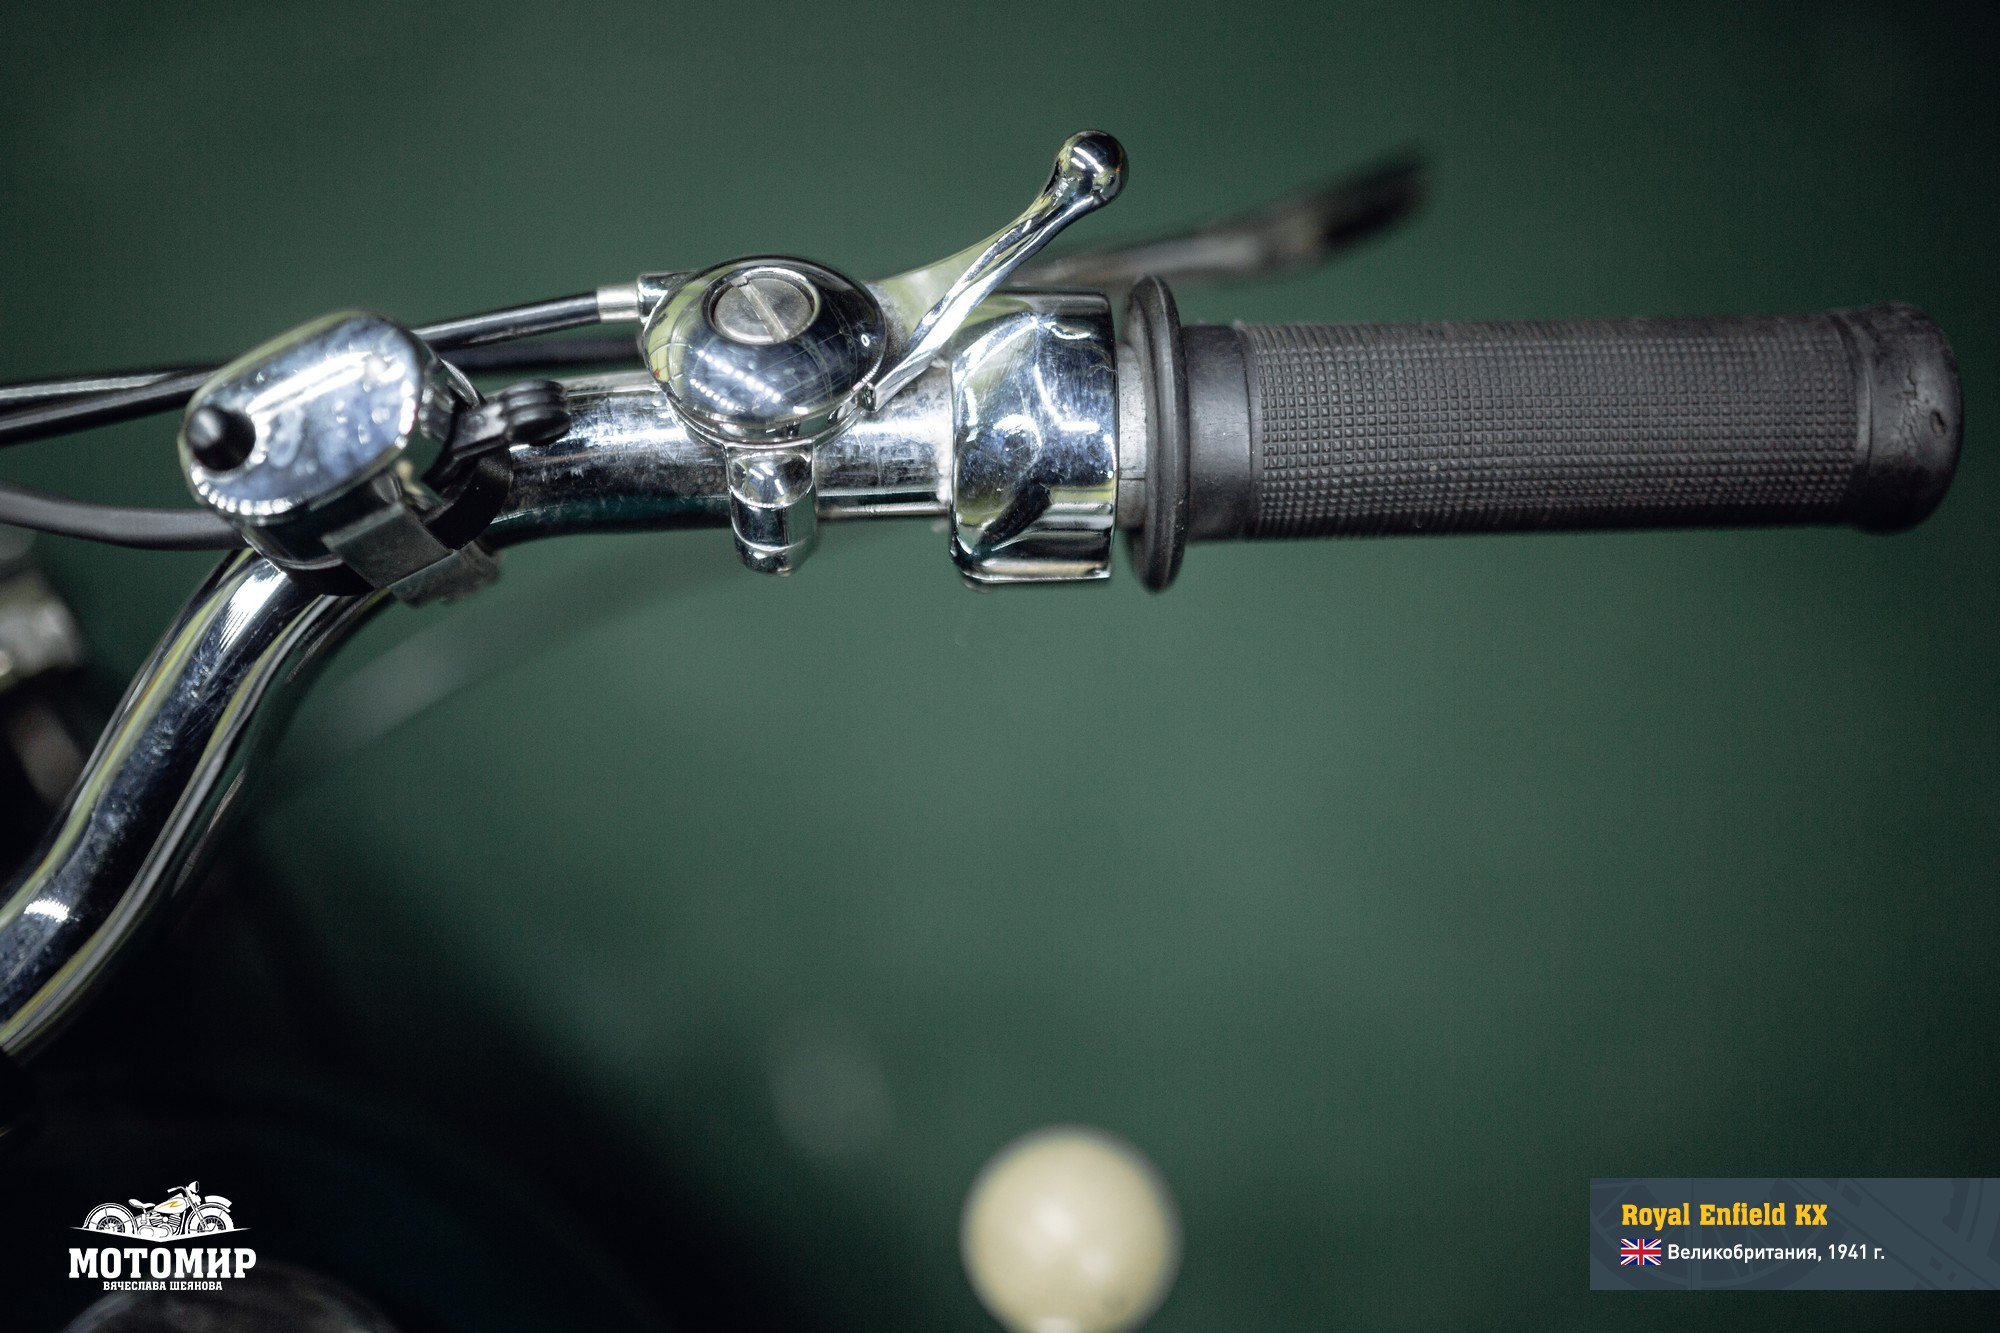 royal-enfield-kx-201601-web-16